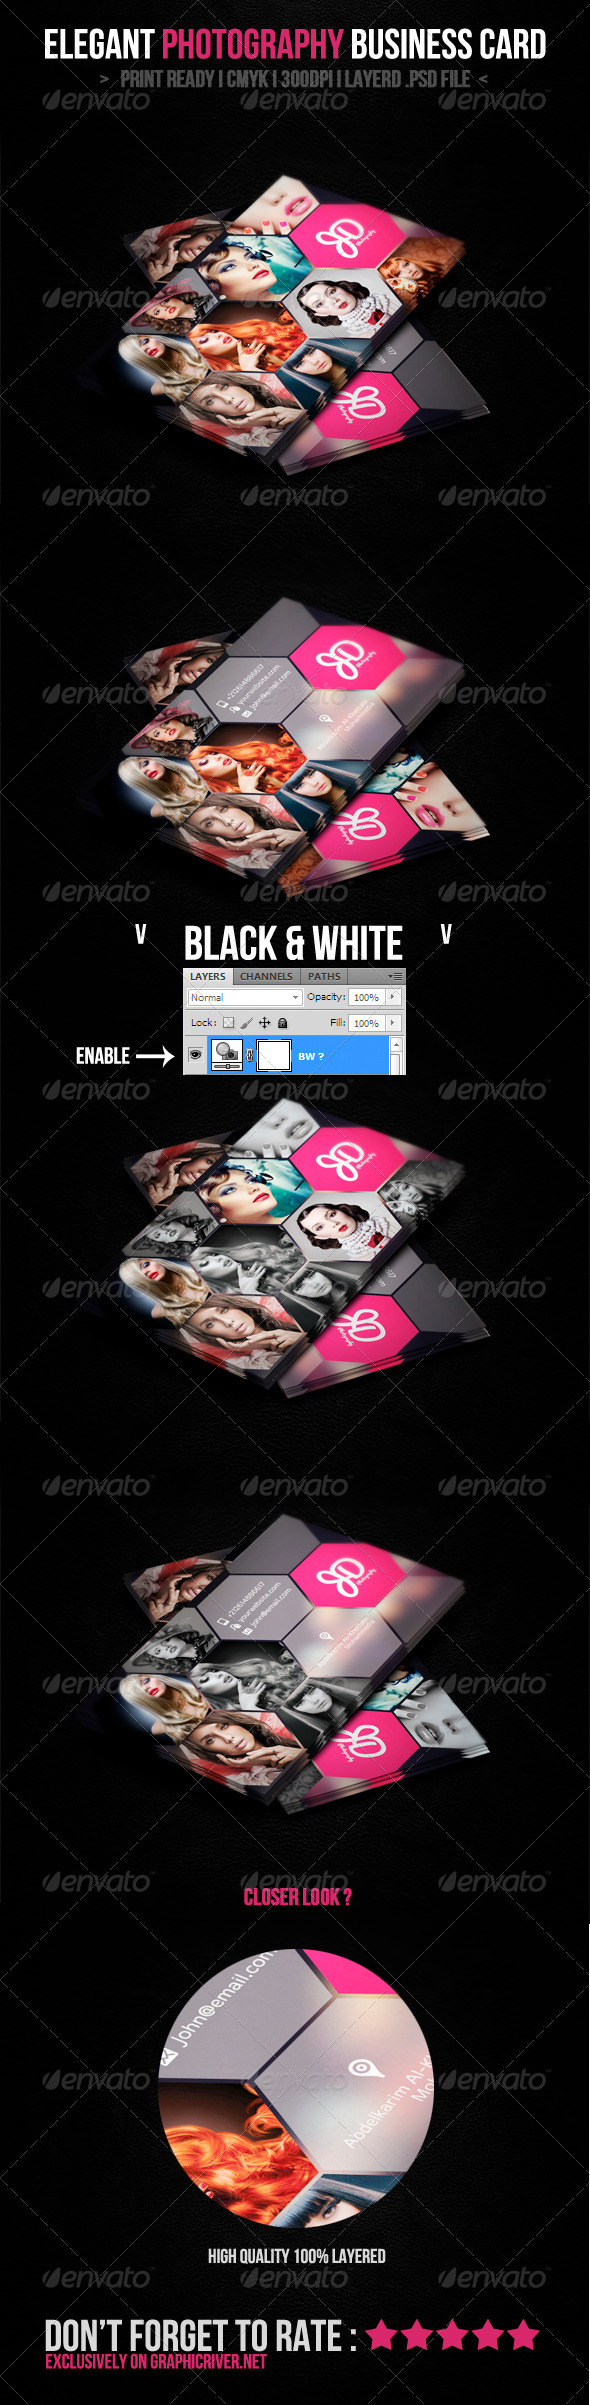 GraphicRiver Elegant Photography Business Card 4653685